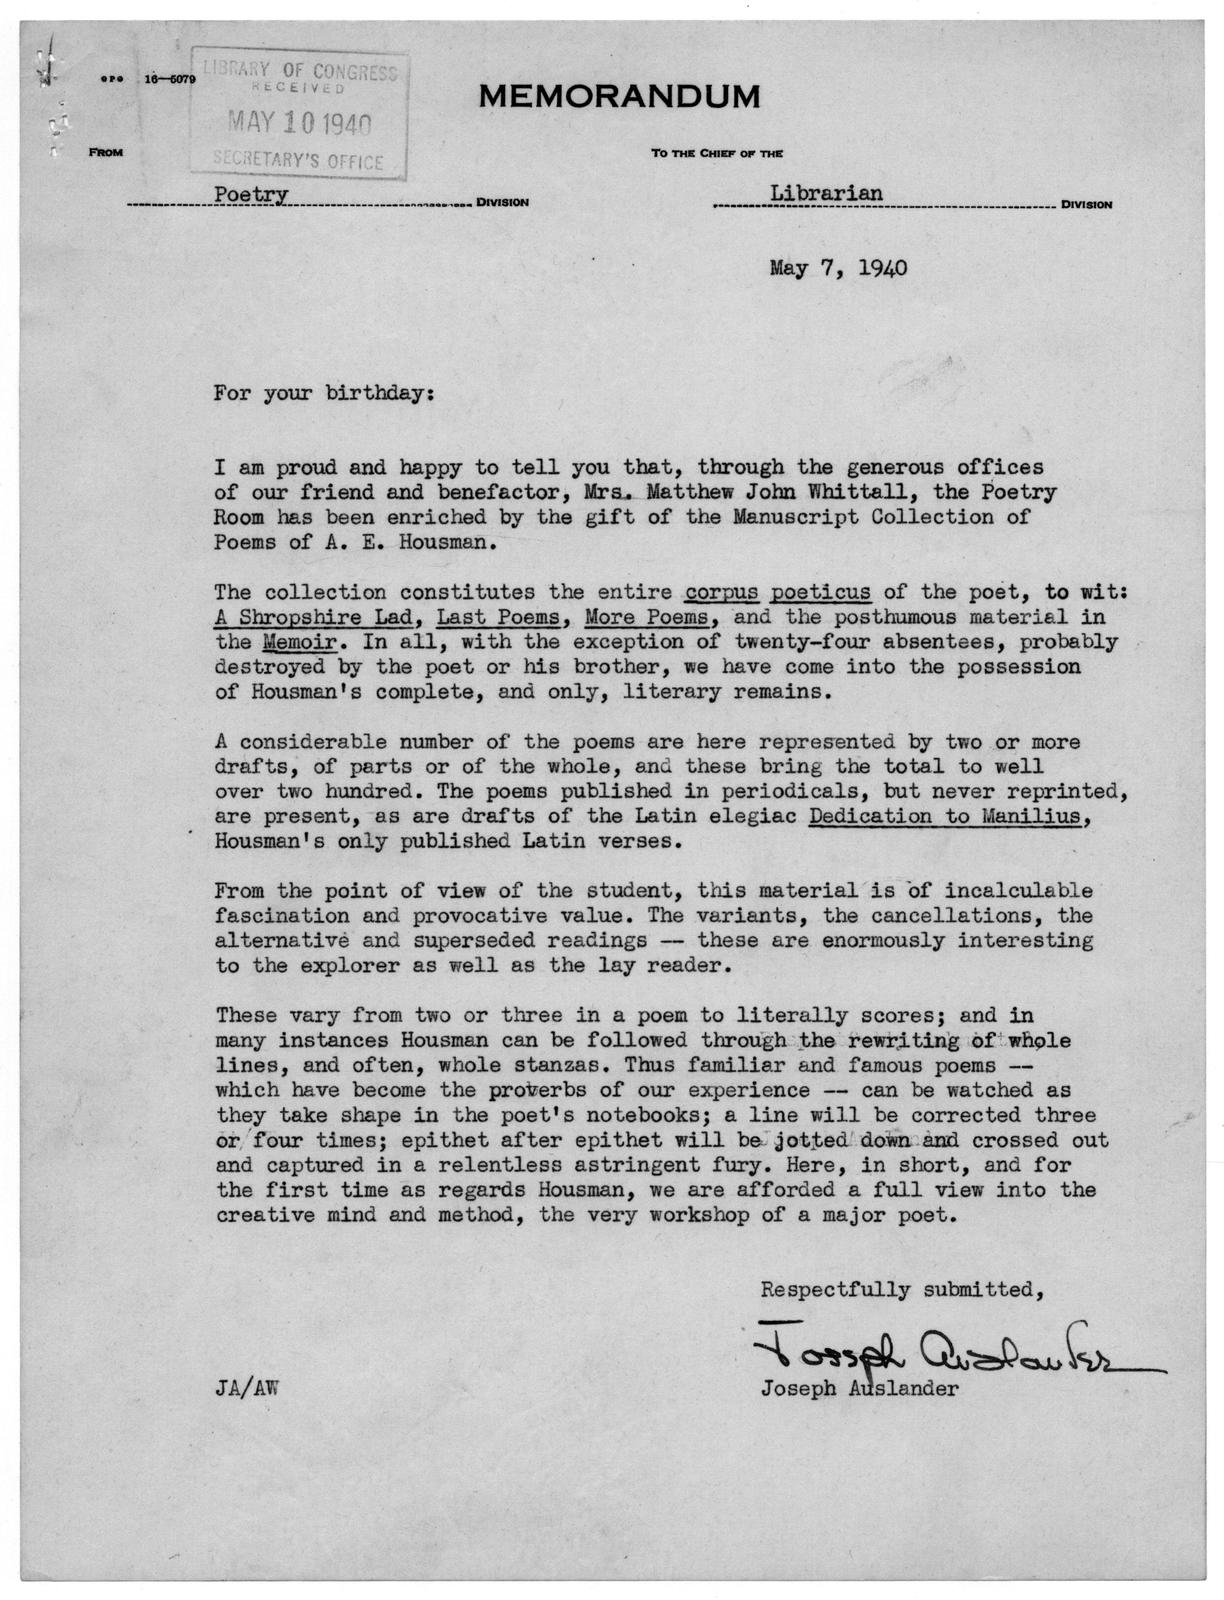 Letter from Joseph Auslander to Archibald MacLeish, May 7, 1940